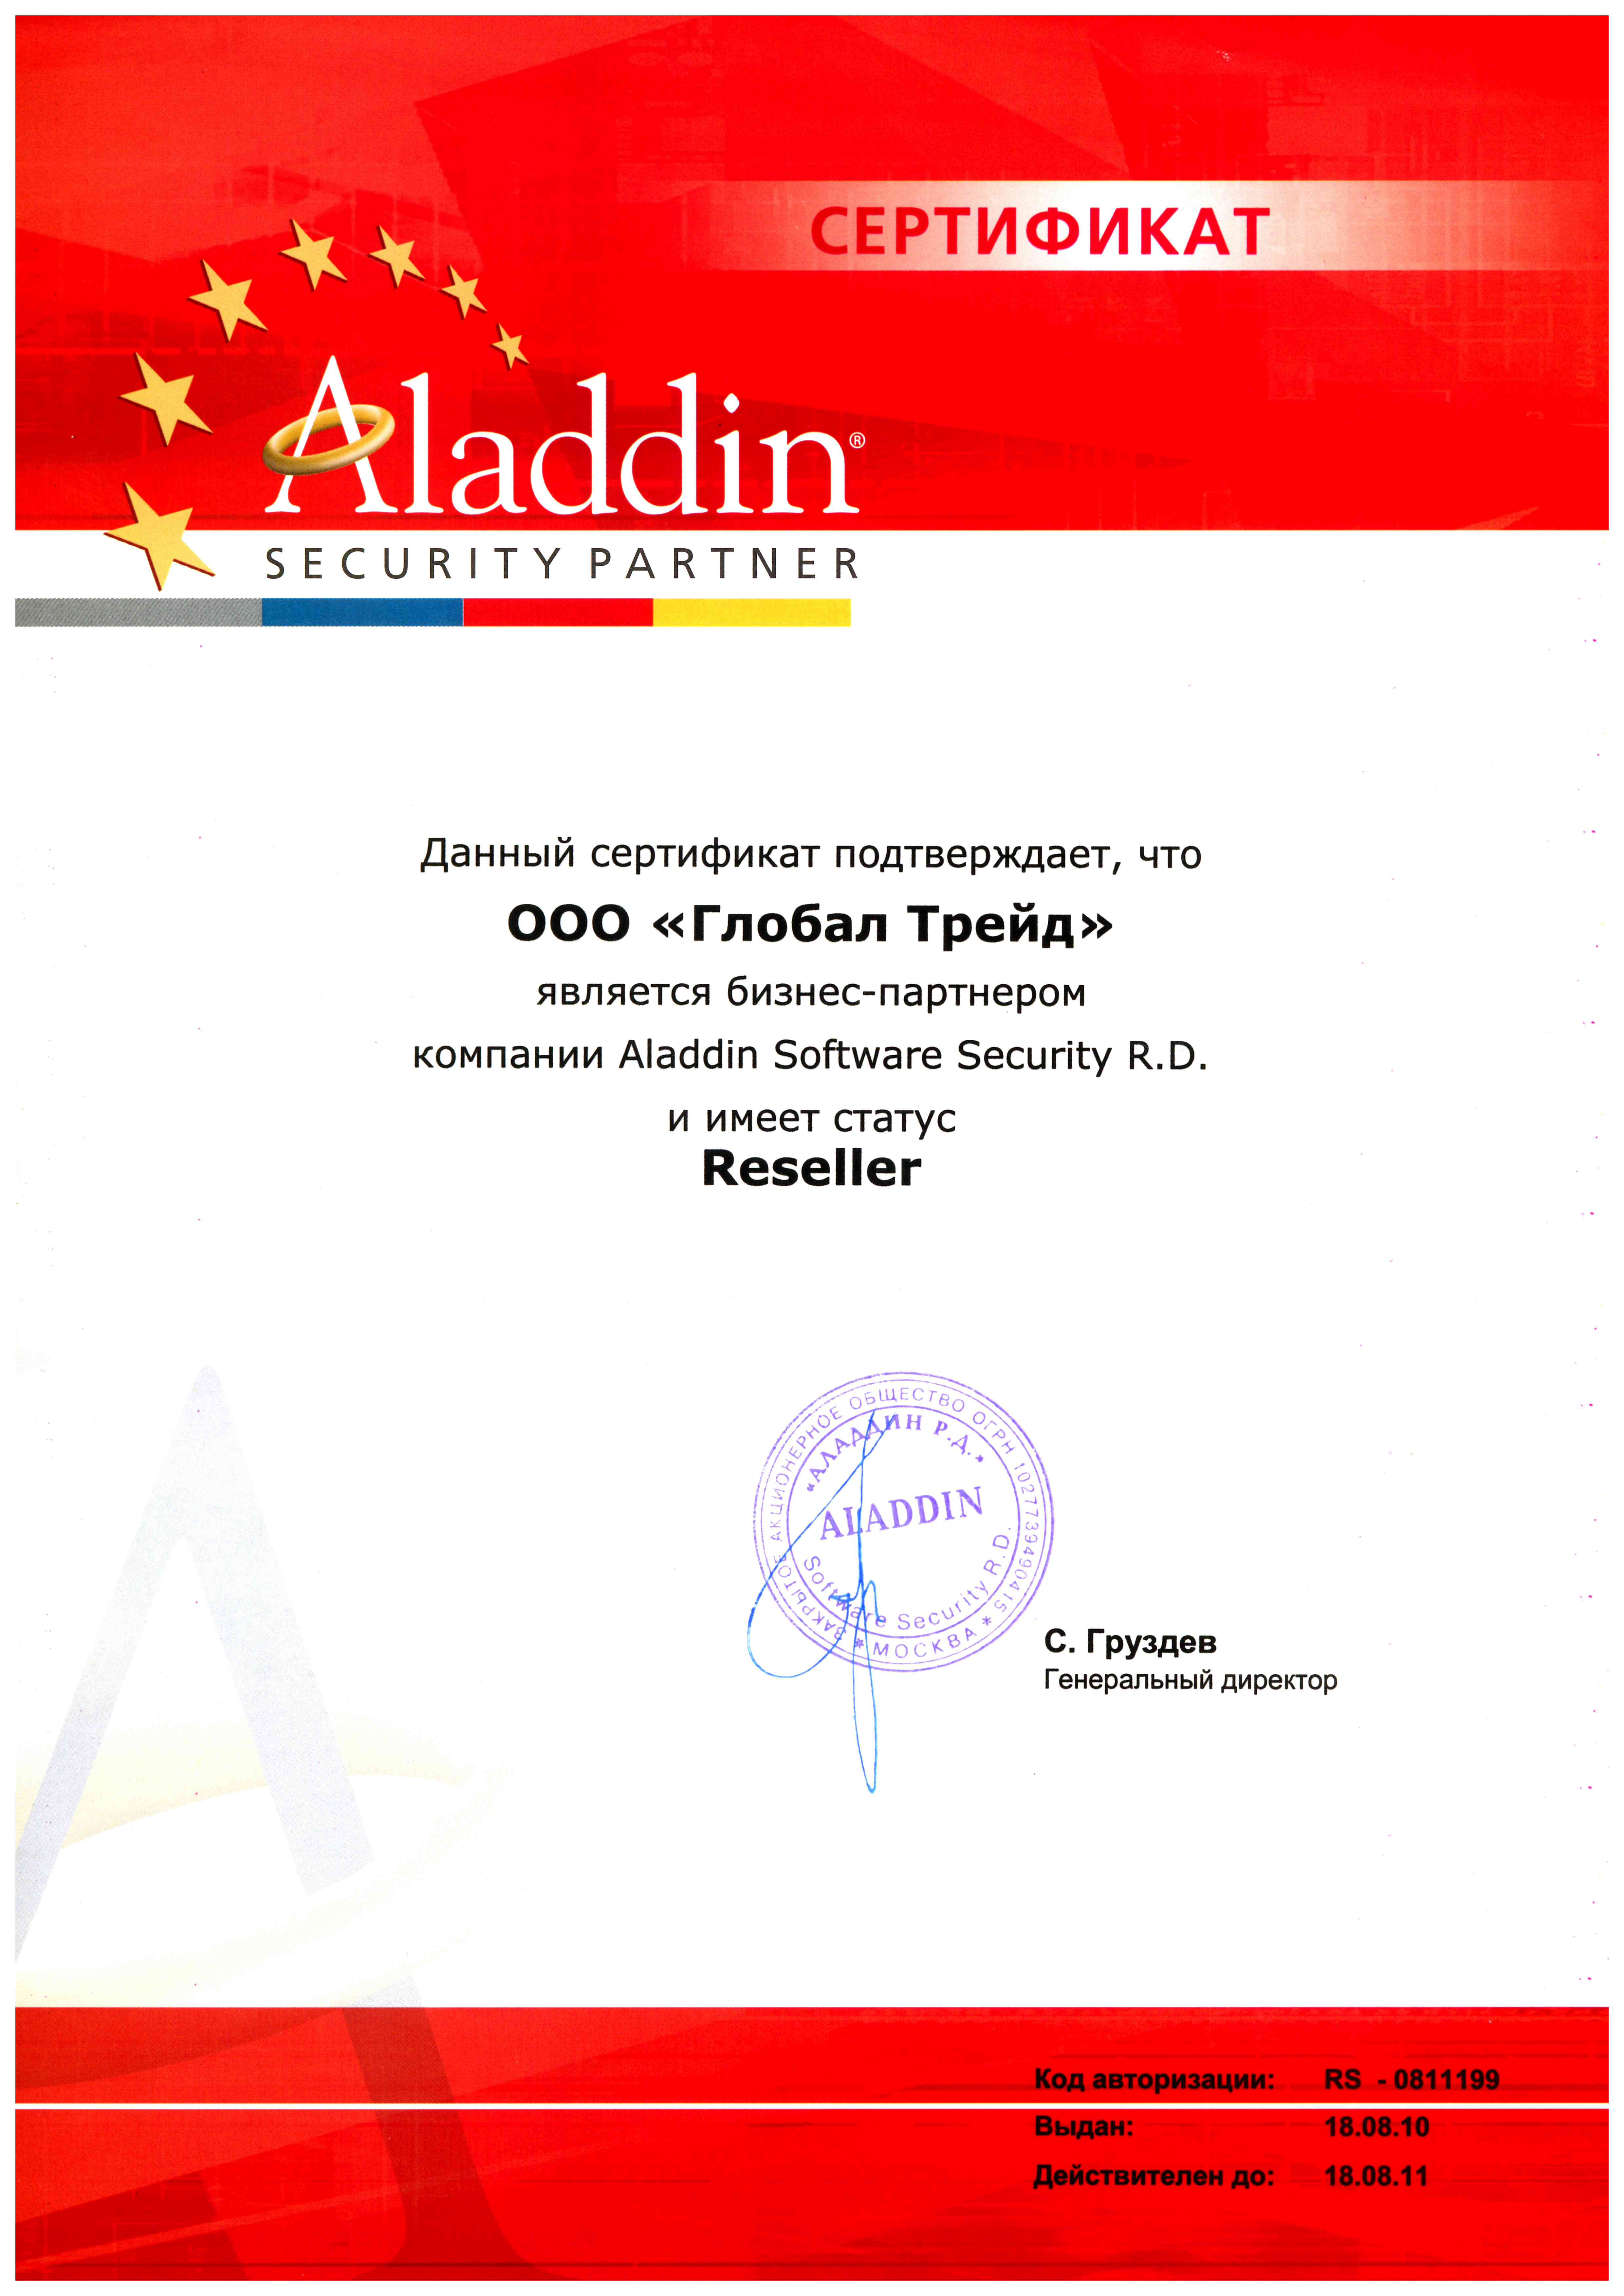 Сертификат партнера Aladdin Software Security R.D.